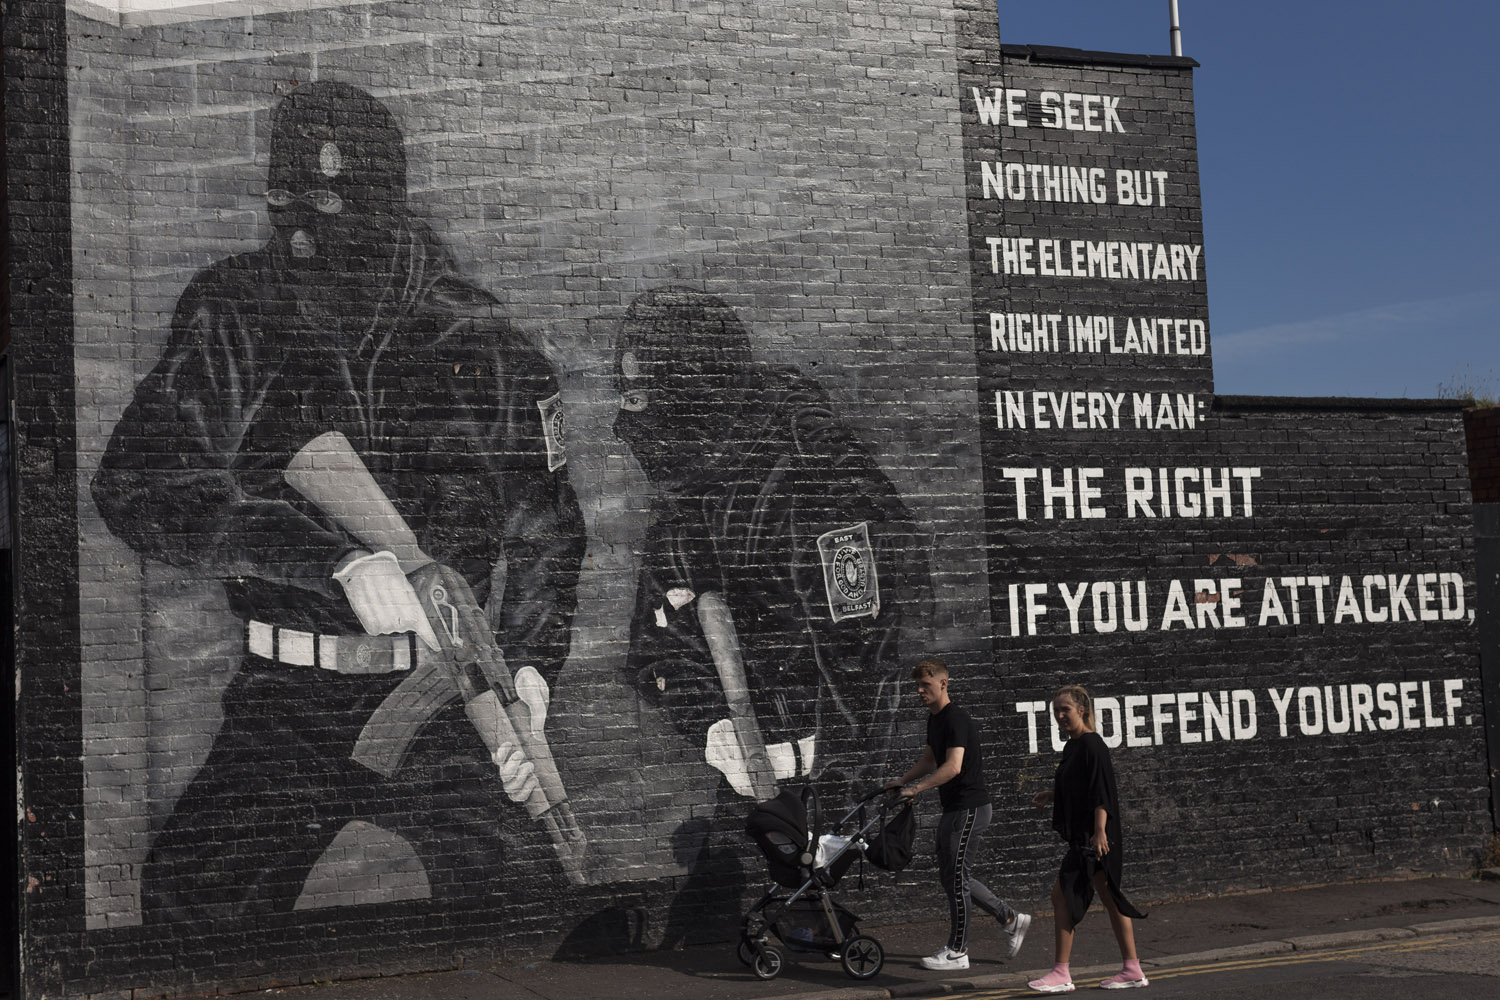 Shankill Road, the heart of the Protestant community in West Belfast, which is traditionally regarded as the Catholic part of the city. Political murals can be seen everywhere in the city, and although they almost always depict the paramilitaries as they are engaged in open fighting against the enemy, a large part of their activities actually consisted of robberies, extortion, intimidation, killings and attacks against members of the opposite community, aimed at terrorizing it and dissuading the respective paramilitary organizations from continuing to fight, in a spiral of violence whose traumas are still evident in the people of Northern Ireland.